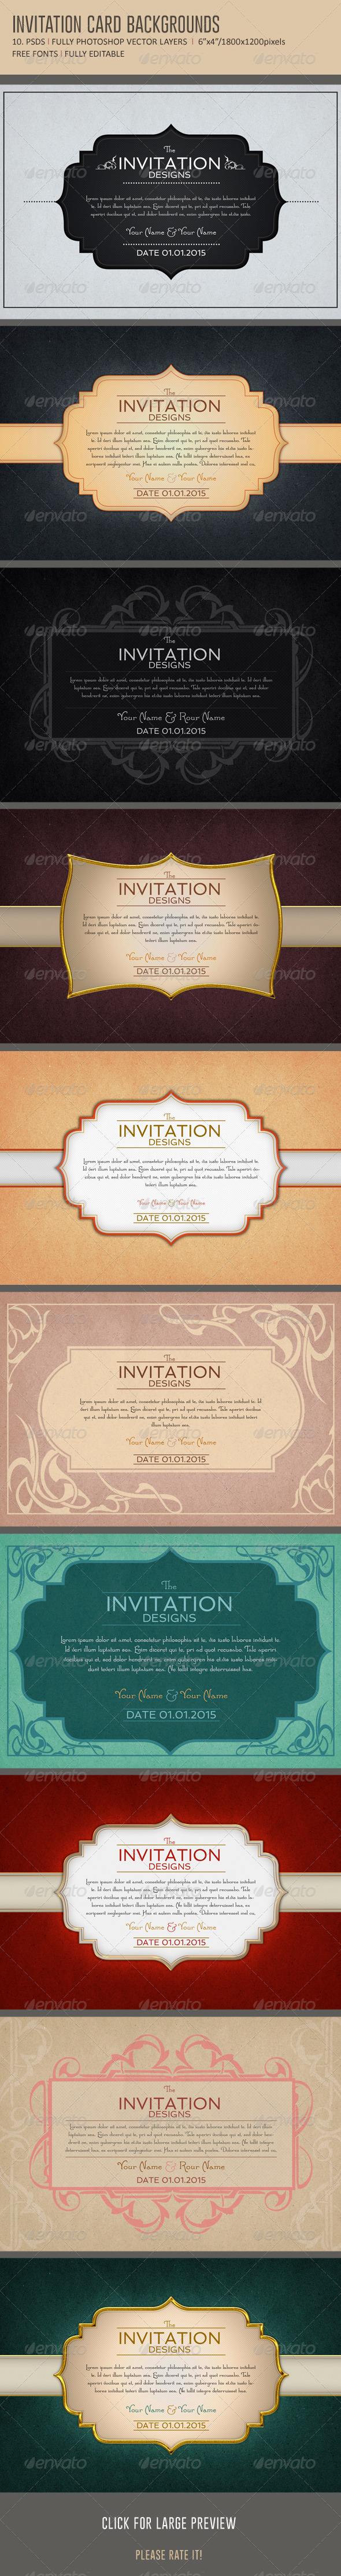 Invitation Card Backgrounds - Backgrounds Graphics